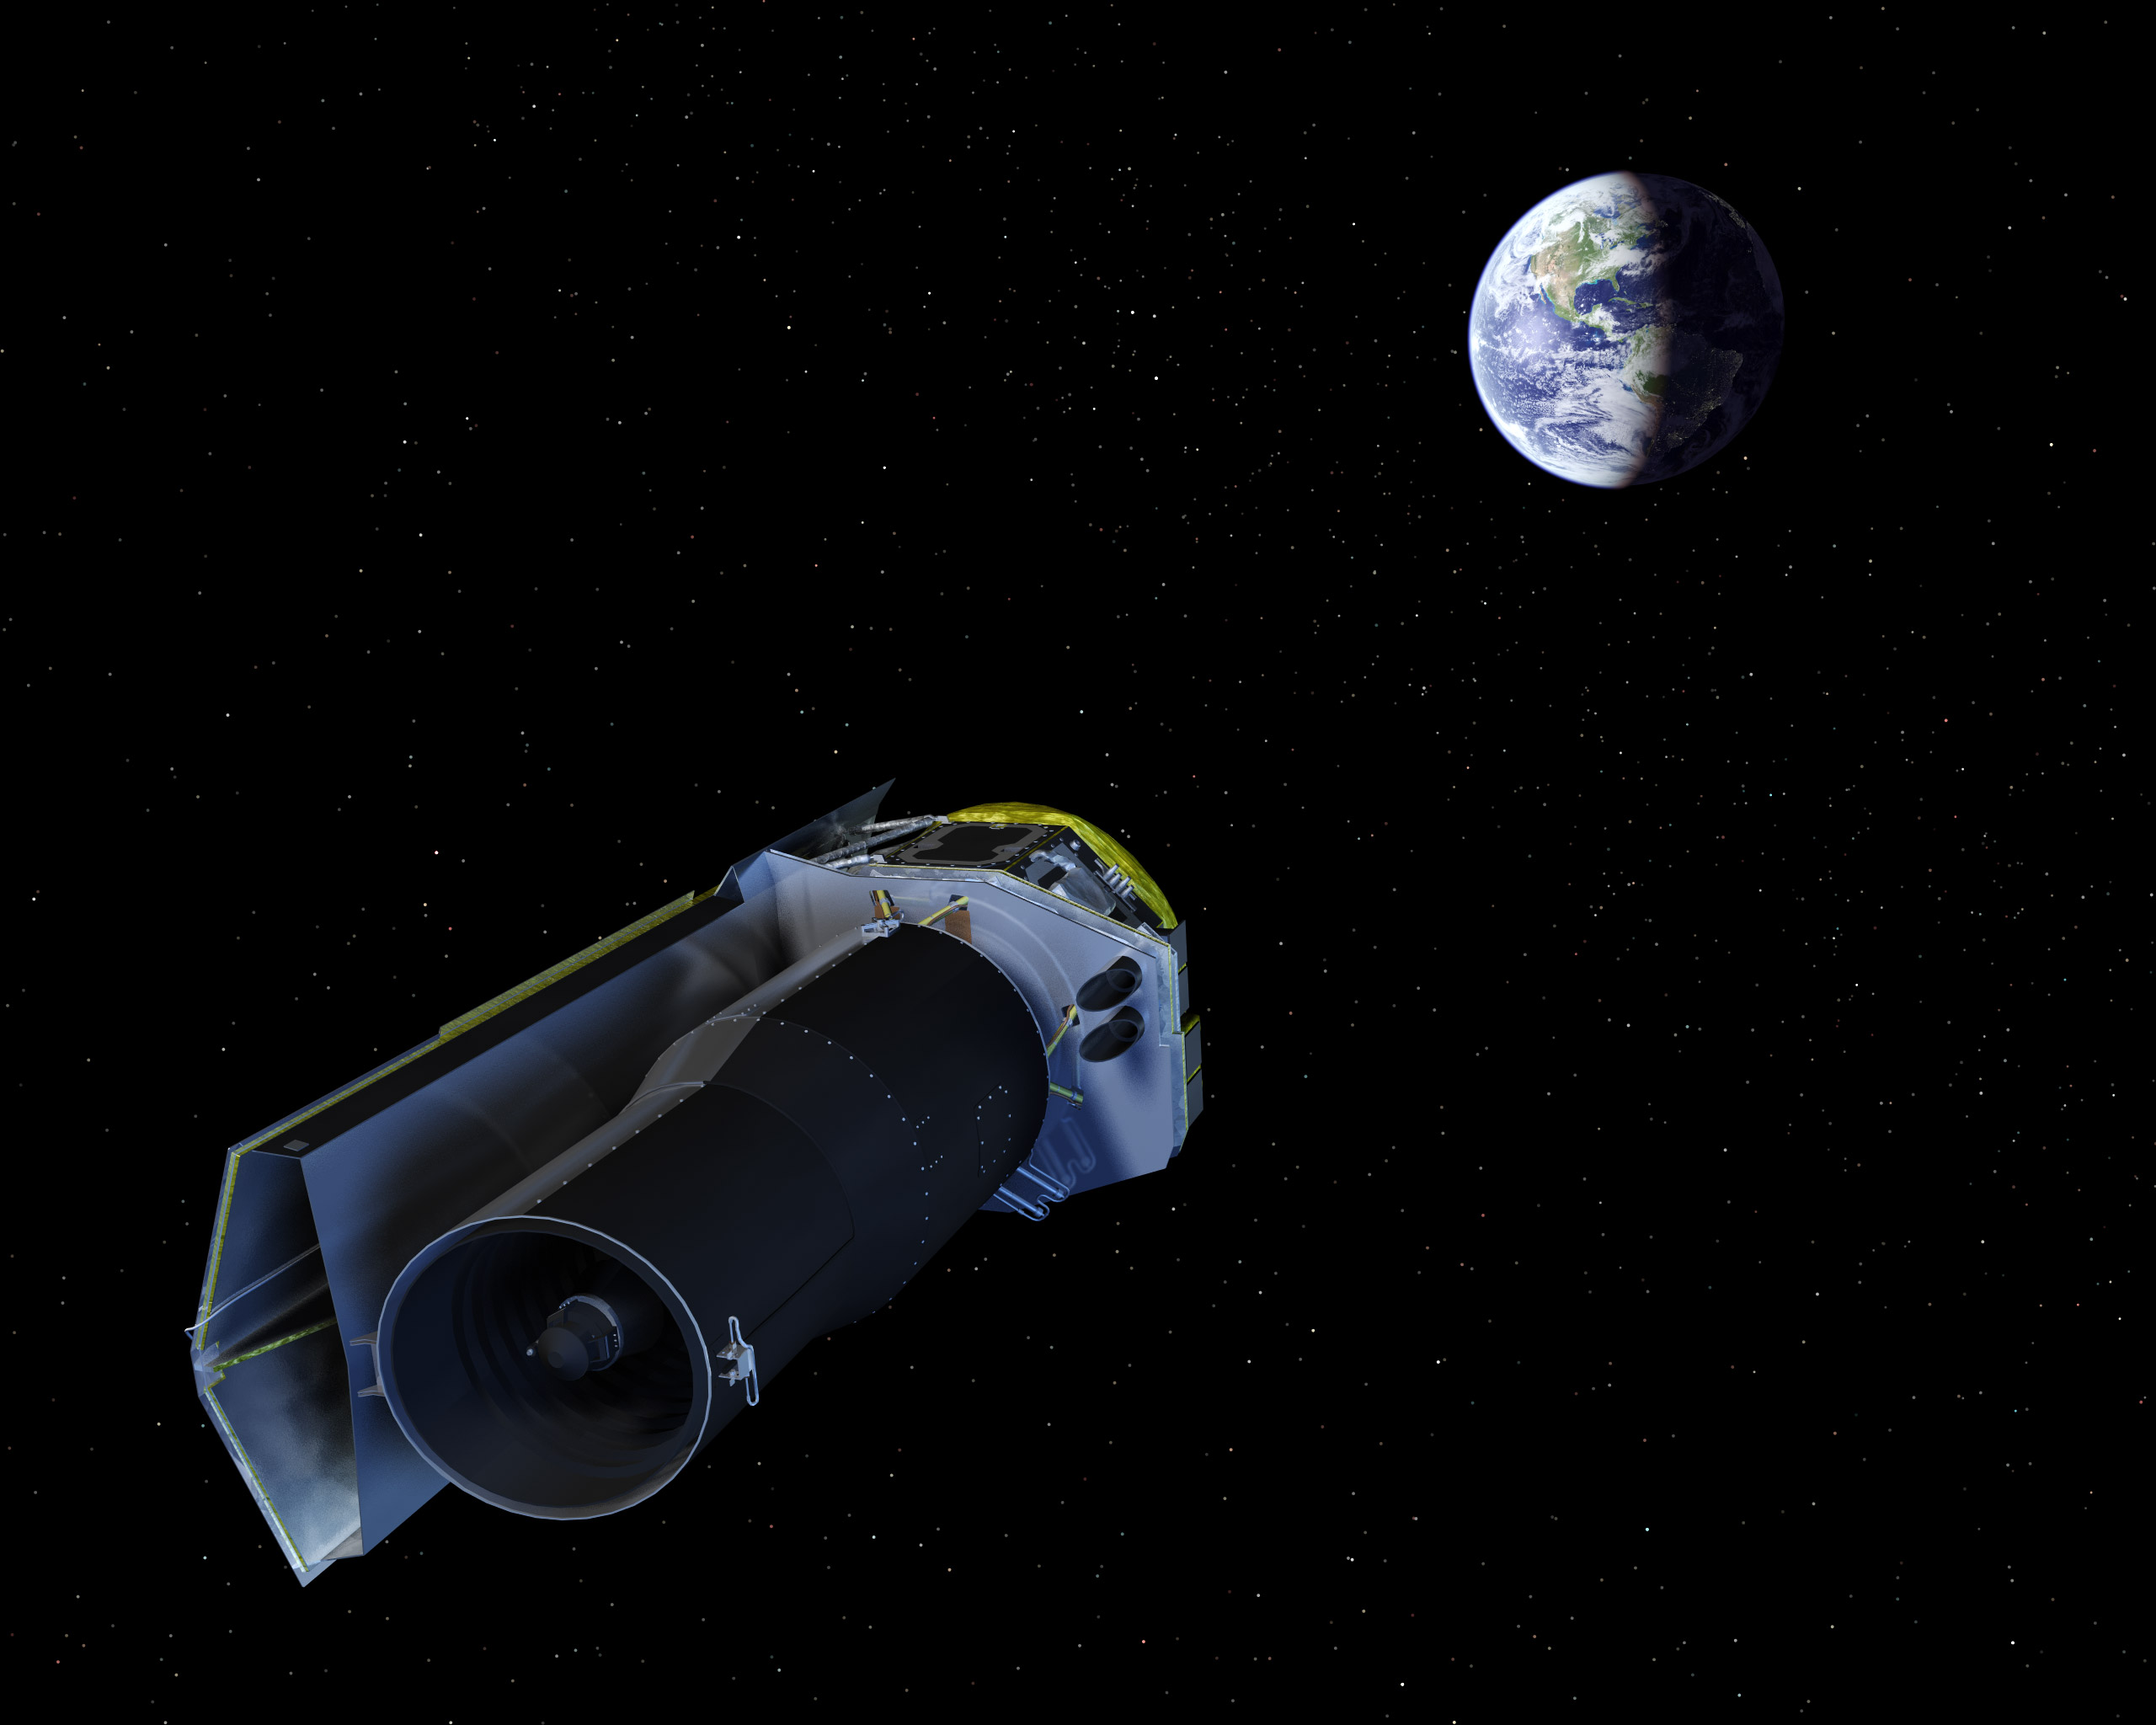 The Spitzer Space Telescope points its high-gain antenna towards the Earth for downlinking recent observations and uplinking new observing instructions. Image: NASA/JPL-Caltech/R. Hurt (SSC)